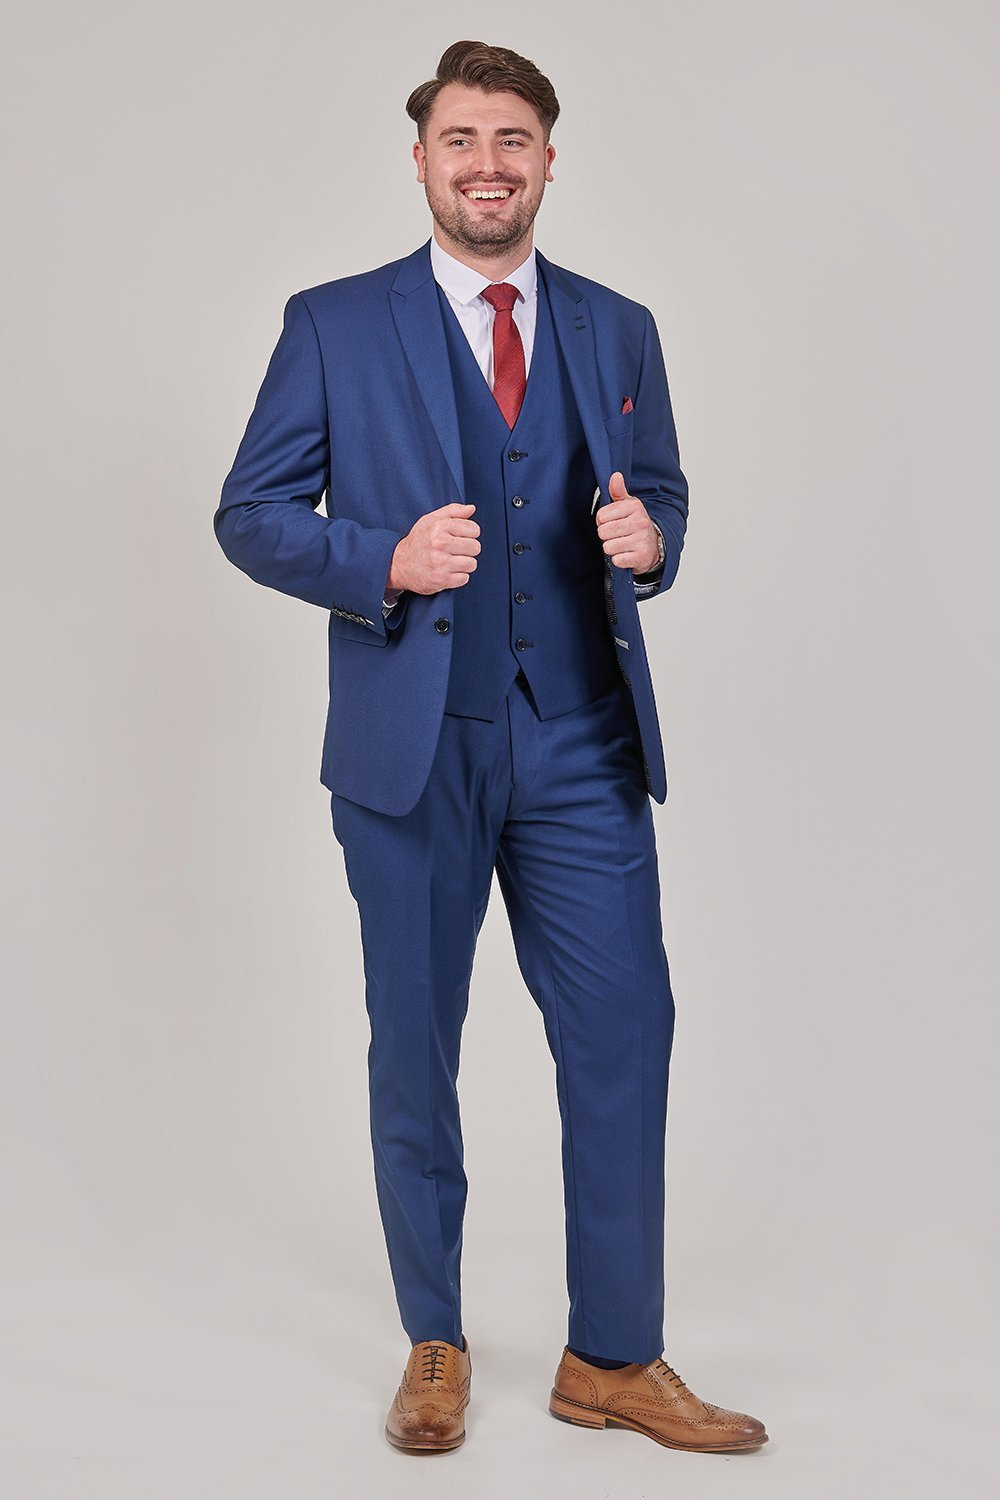 Skopes Kennedy Royal Blue 3 Piece Suit skopes-kennedy-royal-blue-suit-blazer / skopes-kennedy-royal-blue-suit-waistcoat / skopes-kennedy-royal-blue-tailored-fit-suit-trouser